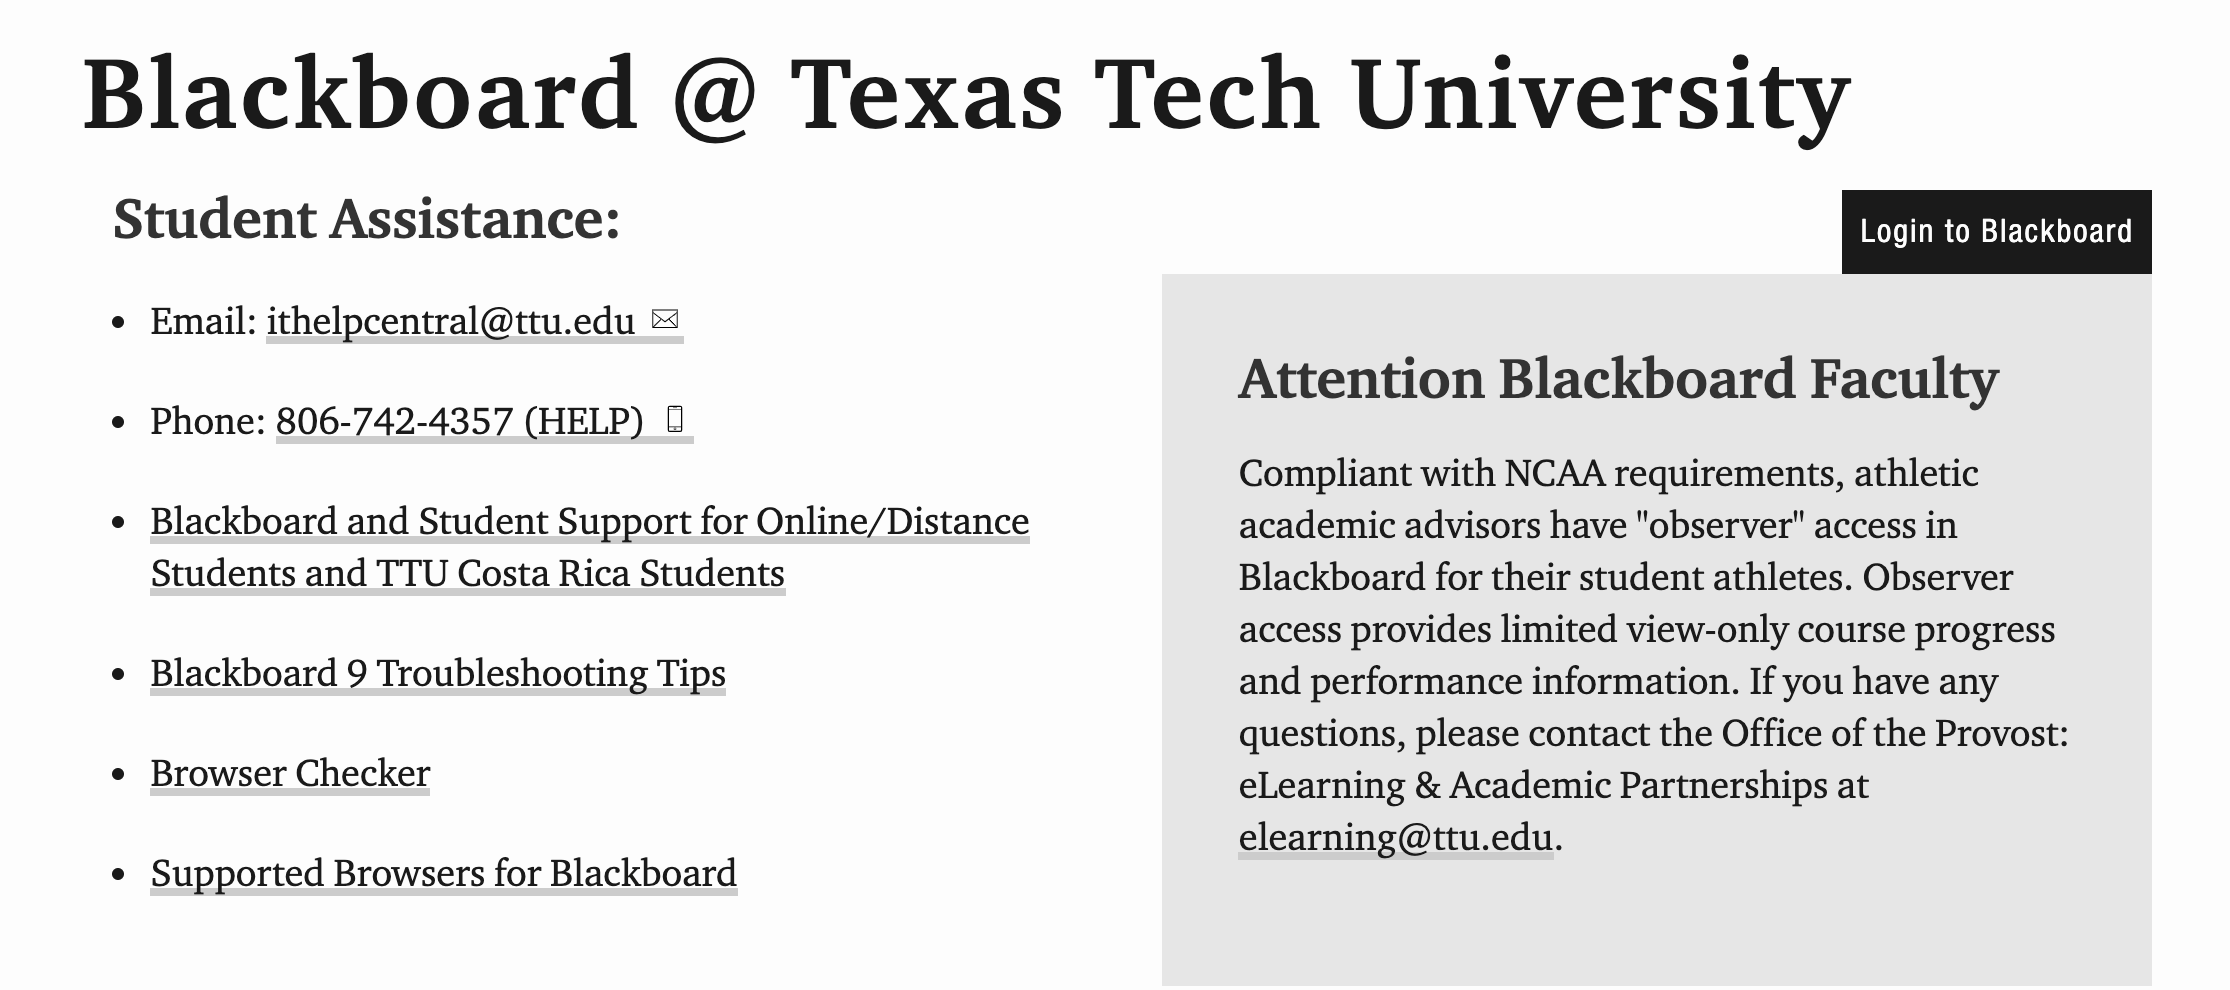 Blackboard Ttu Login Texas Tech Blackboard Sign In Guide